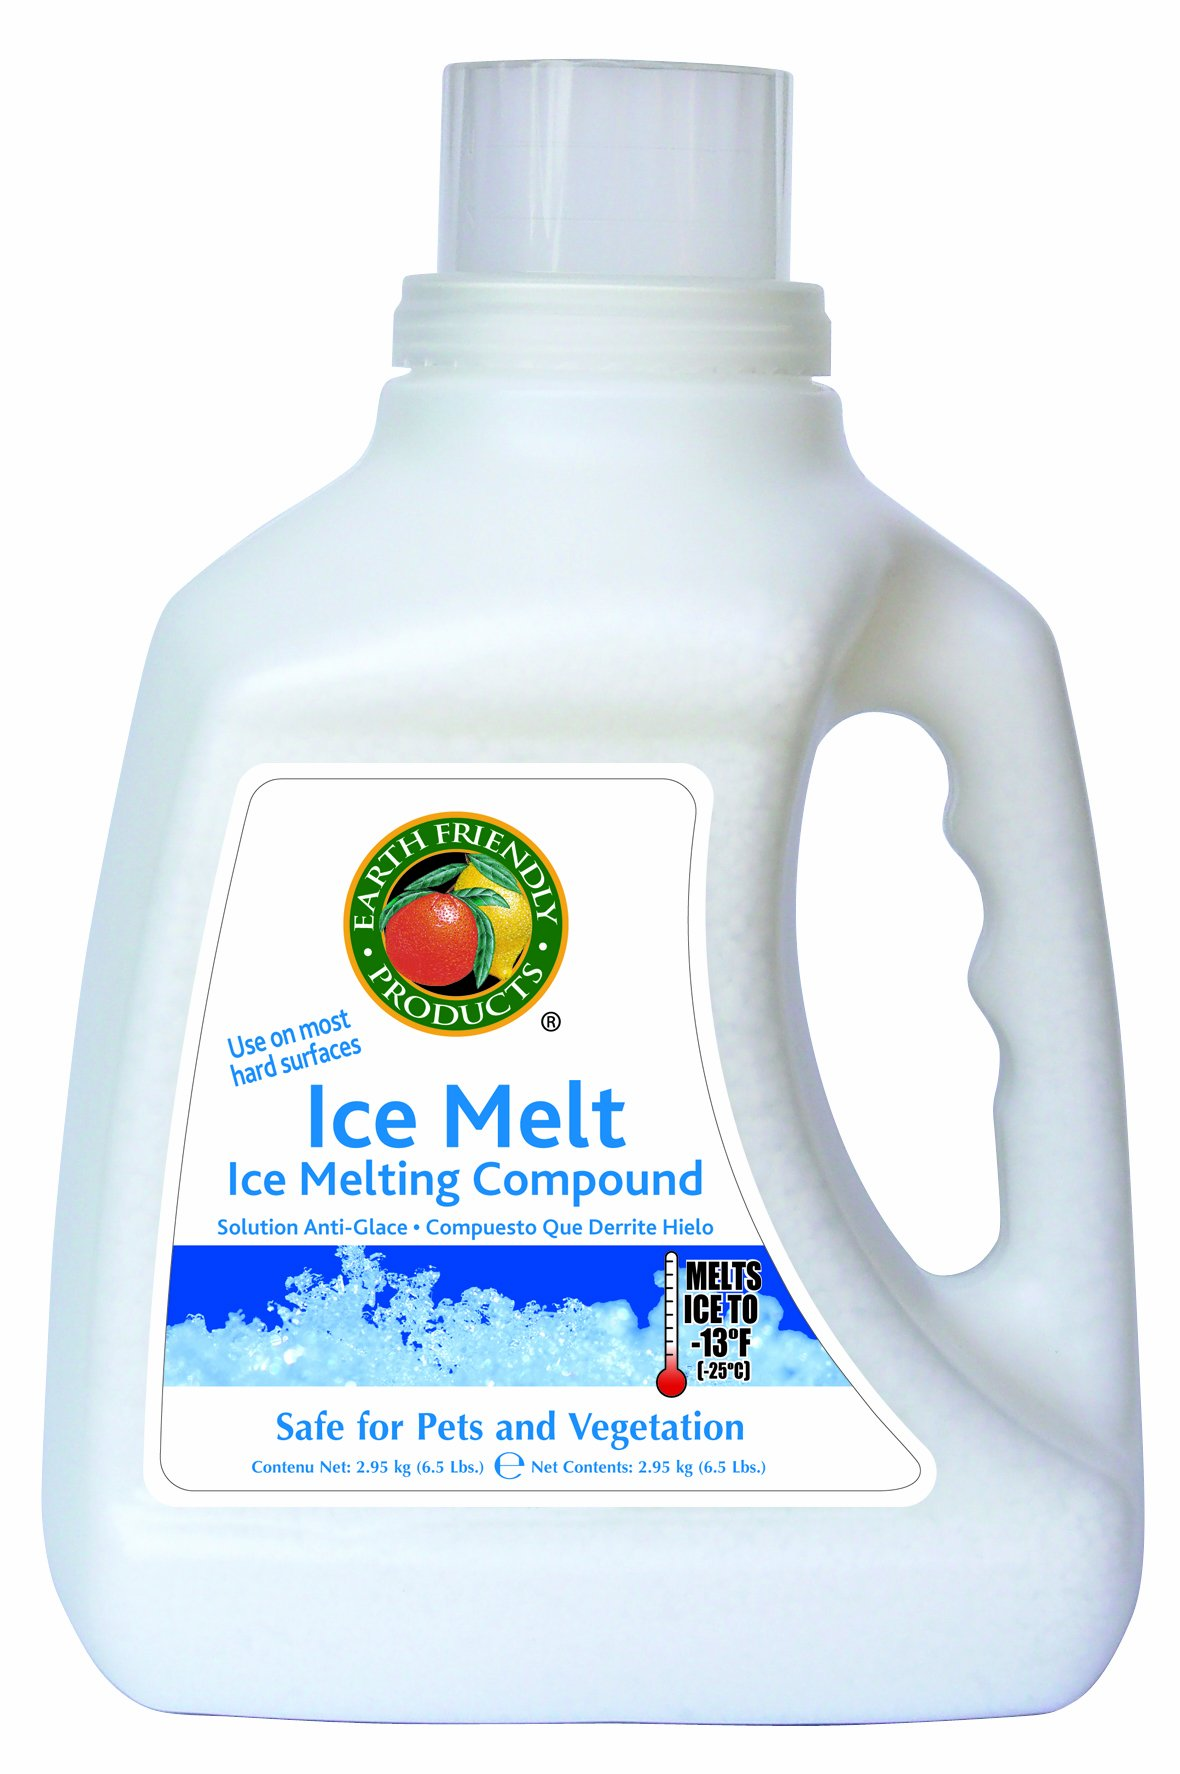 Earth Friendly Products Ice Melt (Ice Melting Compound), 6.5 lbs. Boxes (Pack of 4) by Earth Friendly Products